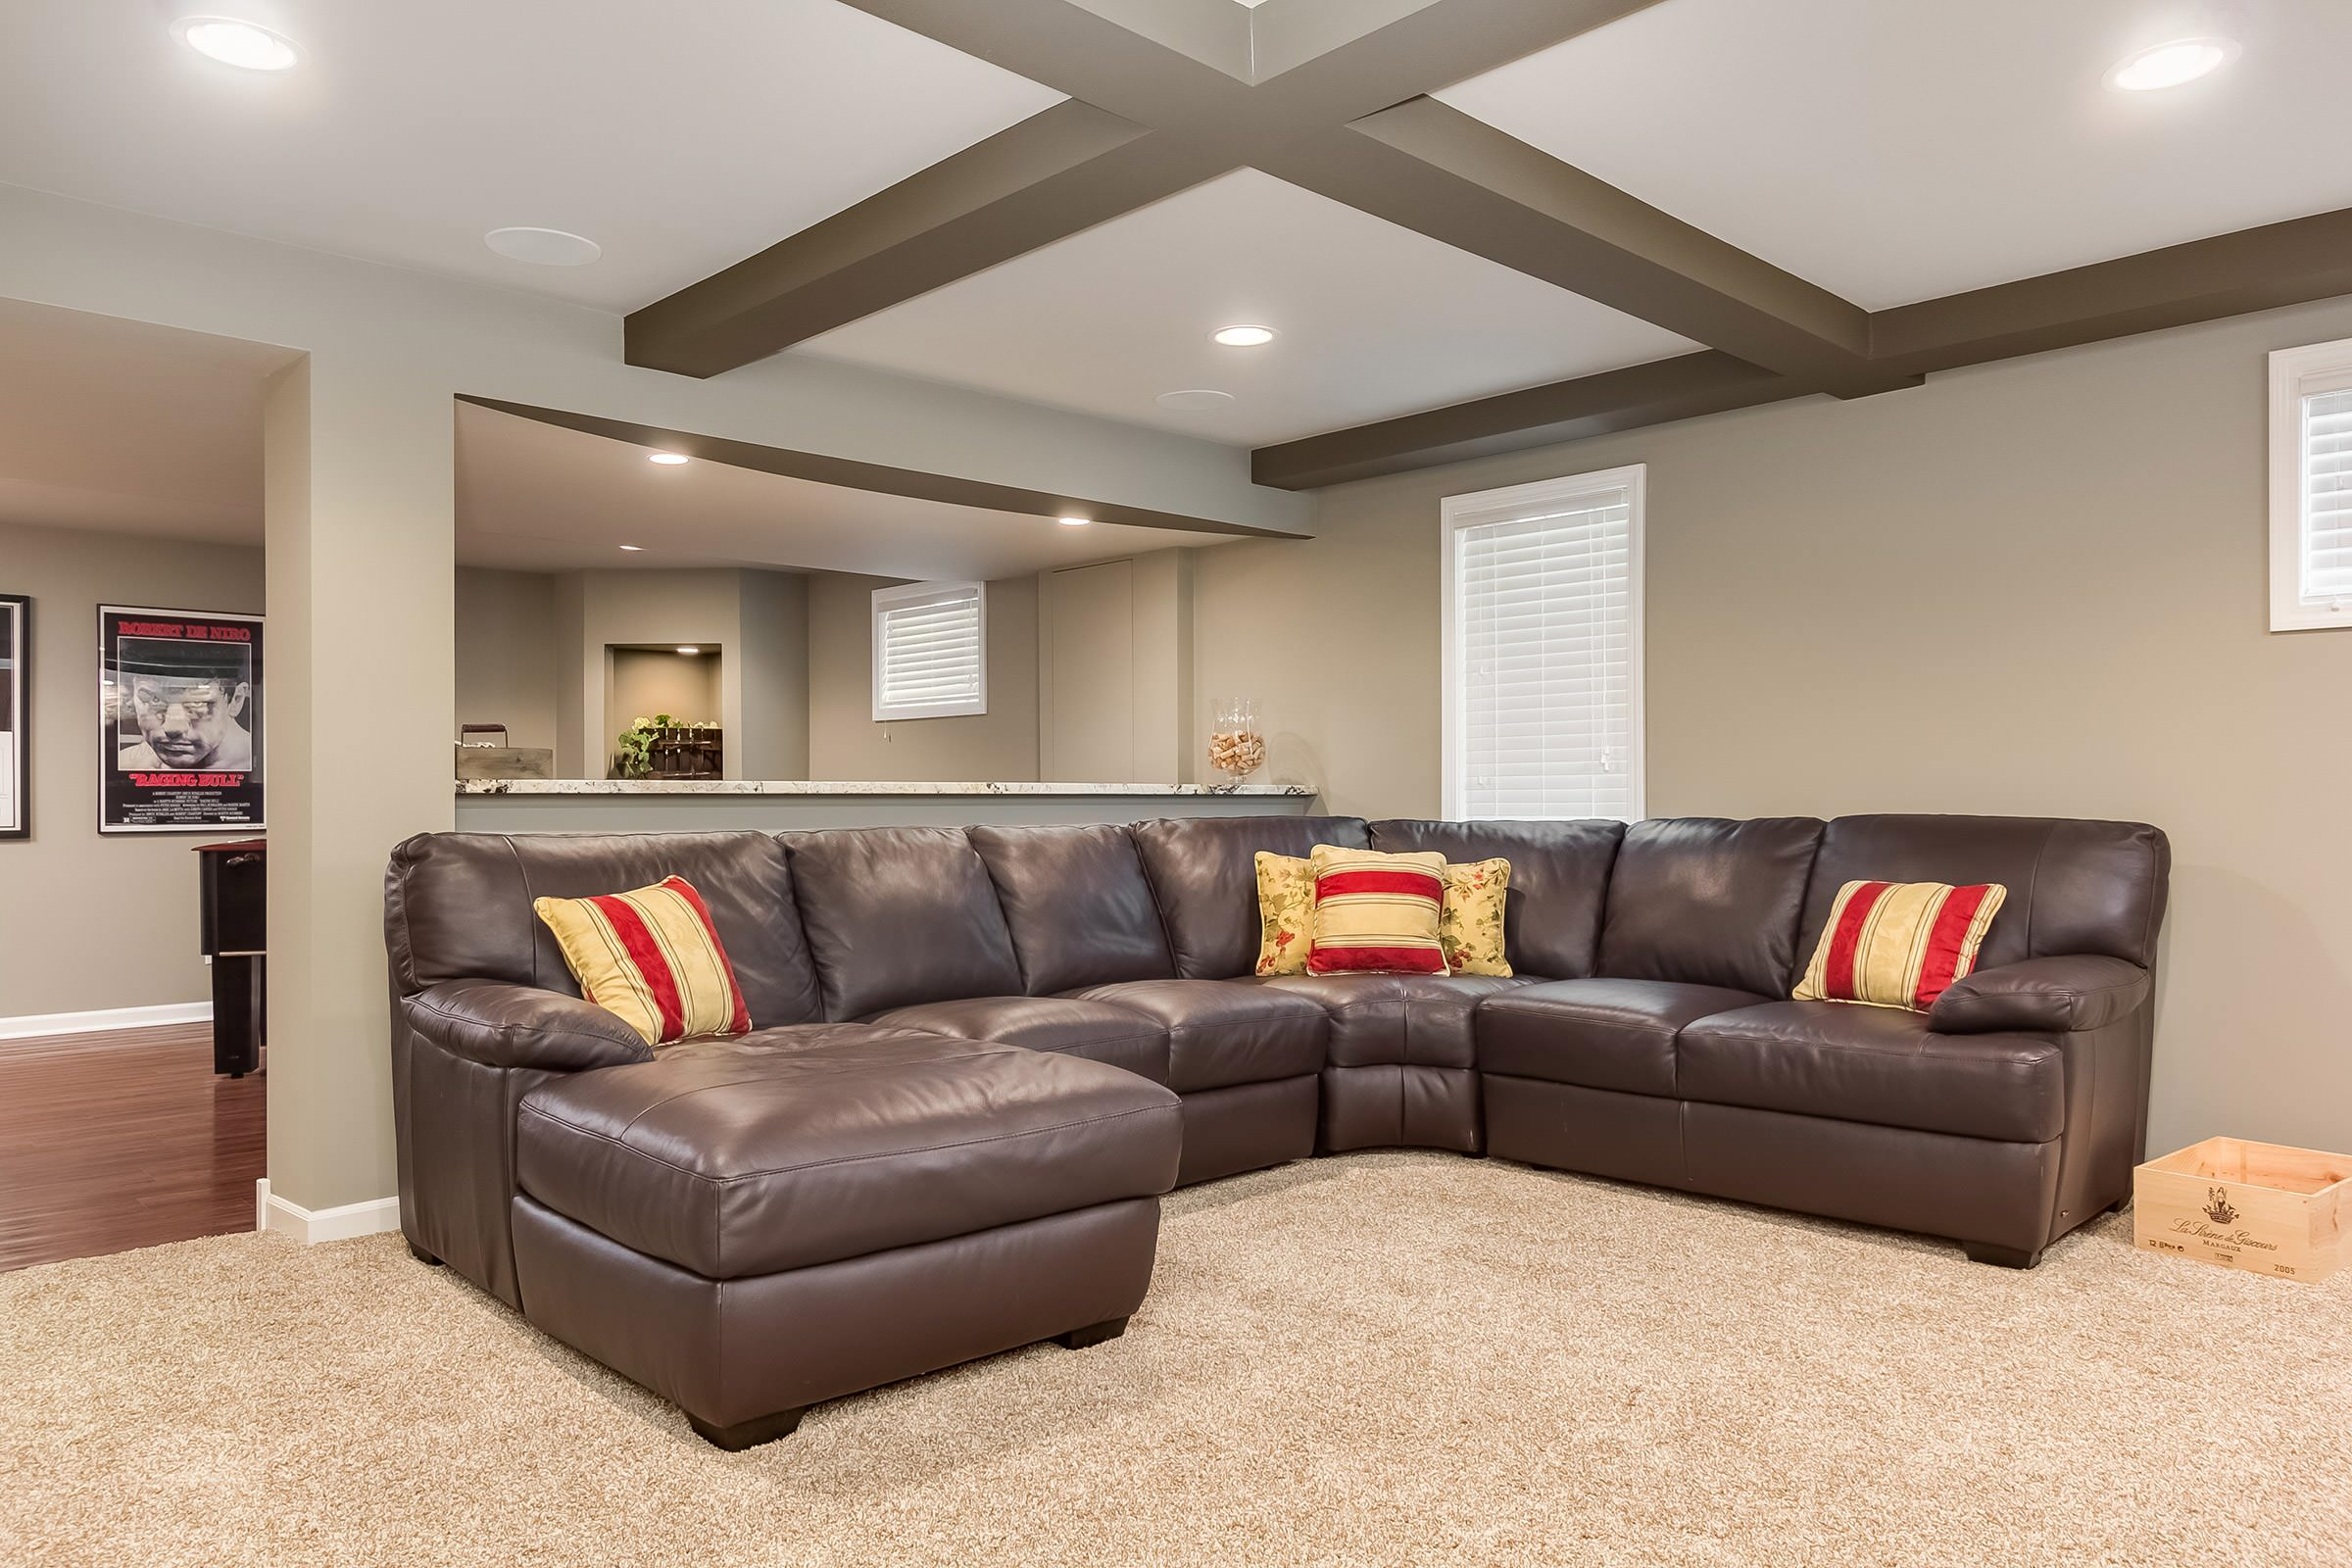 Basement Sectional Sofa Transitional Basement Chicago By Fbc Remodel Houzz